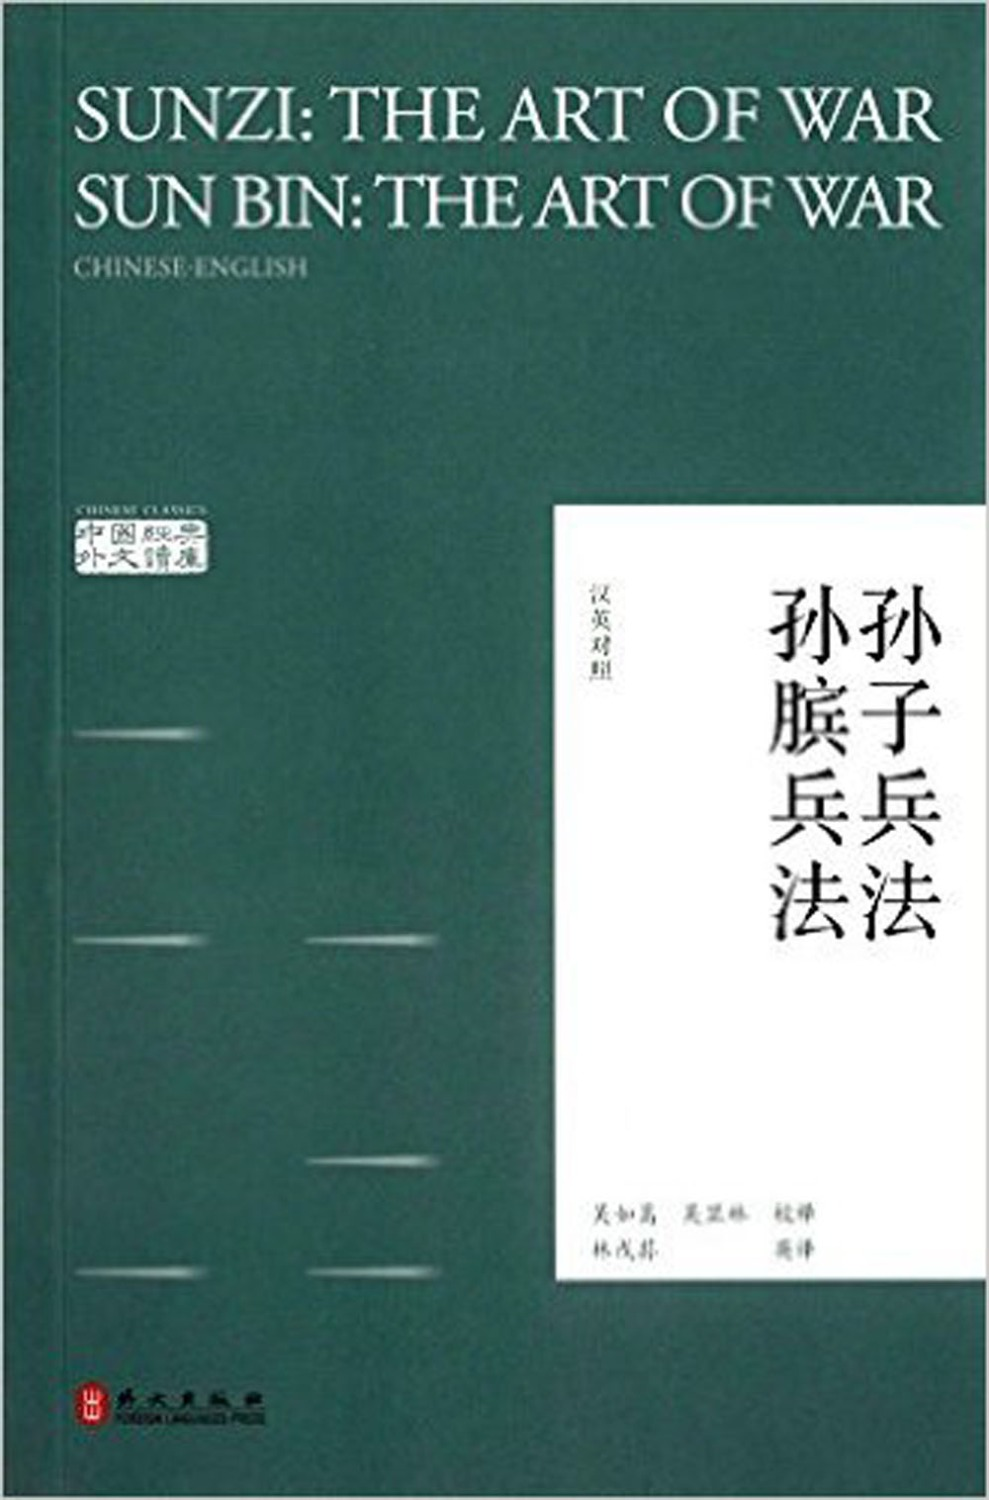 Chinese Classics: Sunzi: the Art of War; Sun Bin: the Art of War (Chinese-English)- bilingual duncan bruce the dream cafe lessons in the art of radical innovation